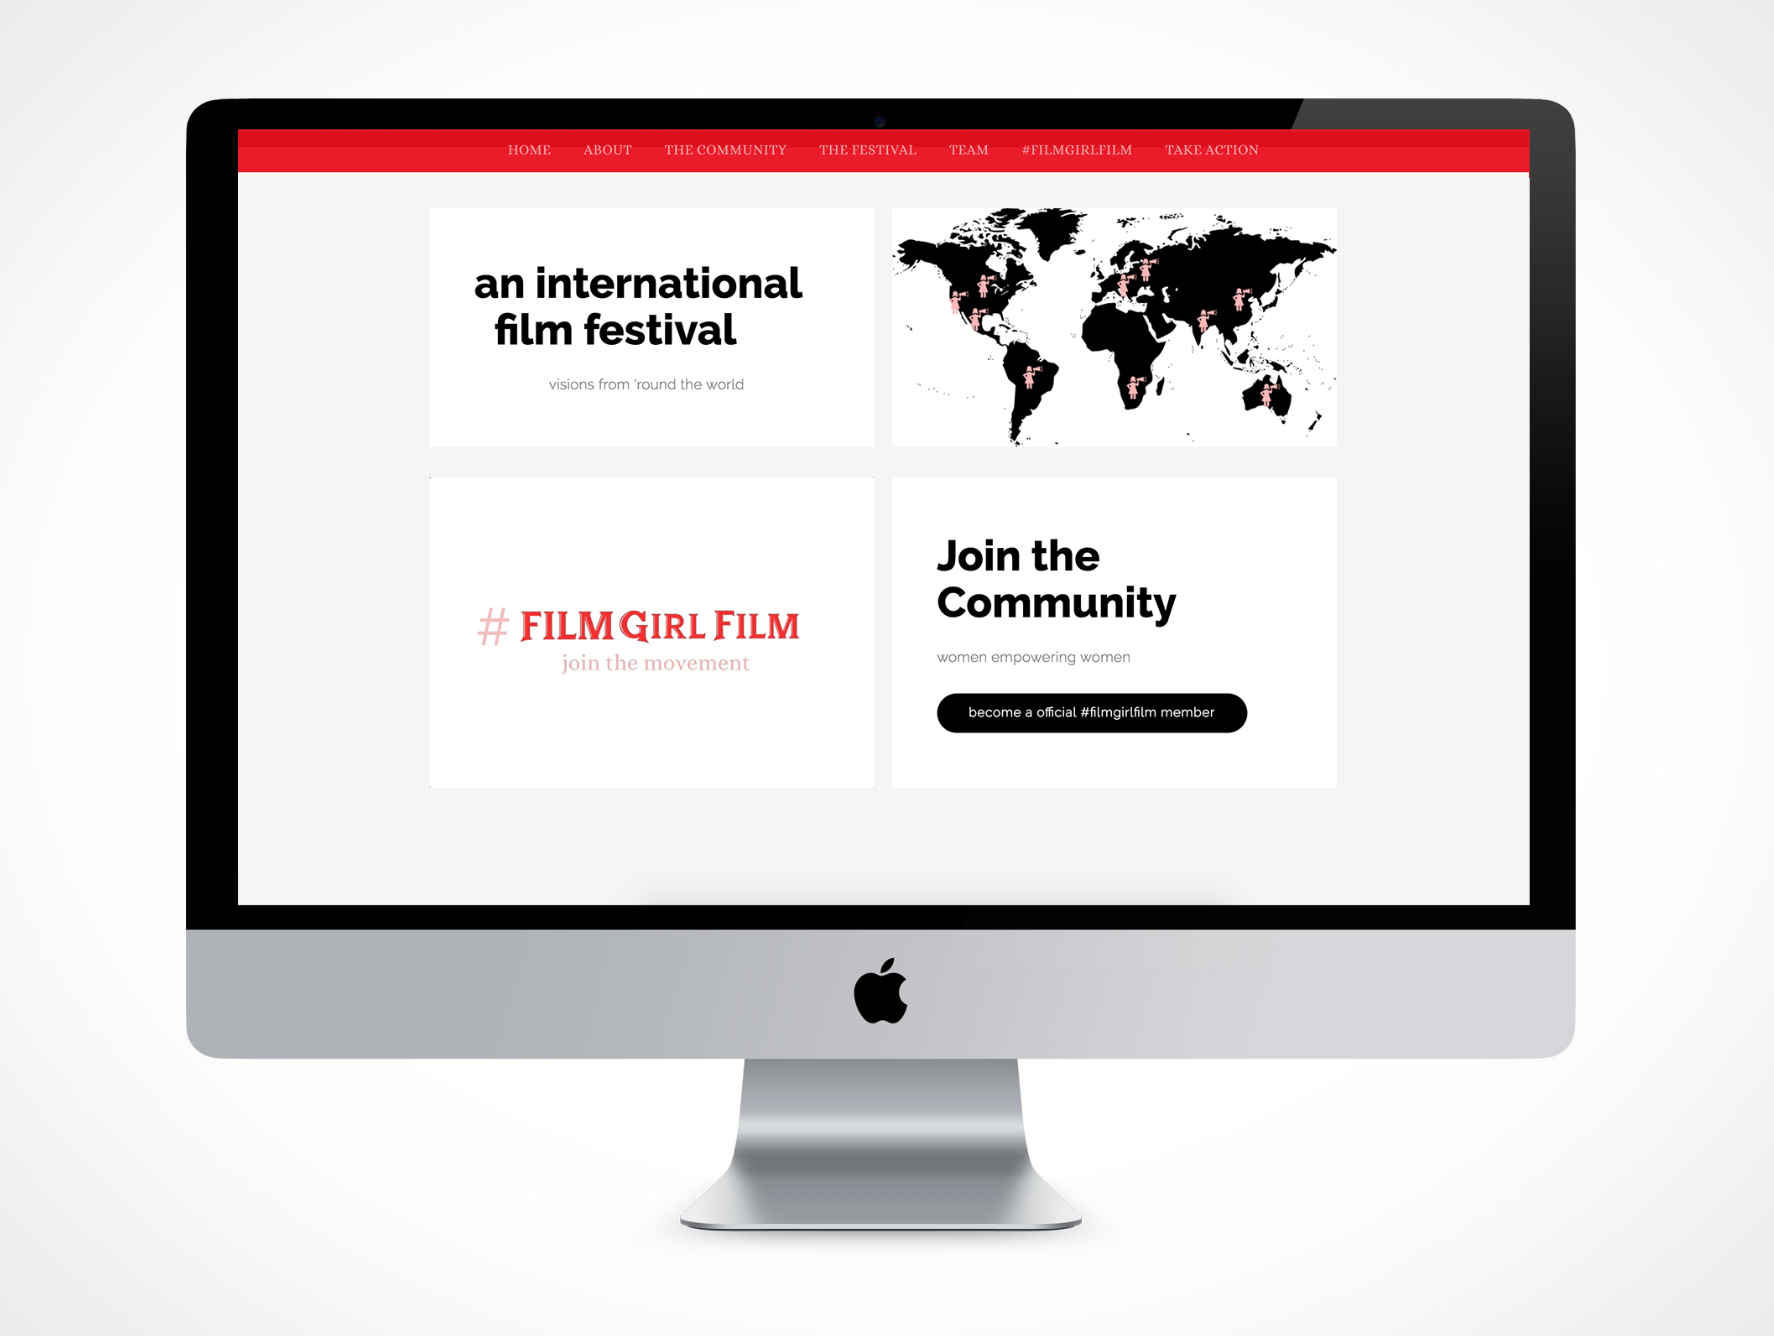 #FILMGIRLFILM PLATFORM Beyond a Website, AMovement was Born. - We created a digital strategy, a movement, a community for organic storytelling across media and ignited organizational leadership with a sustainable vision and branding message to attract national sponsors.